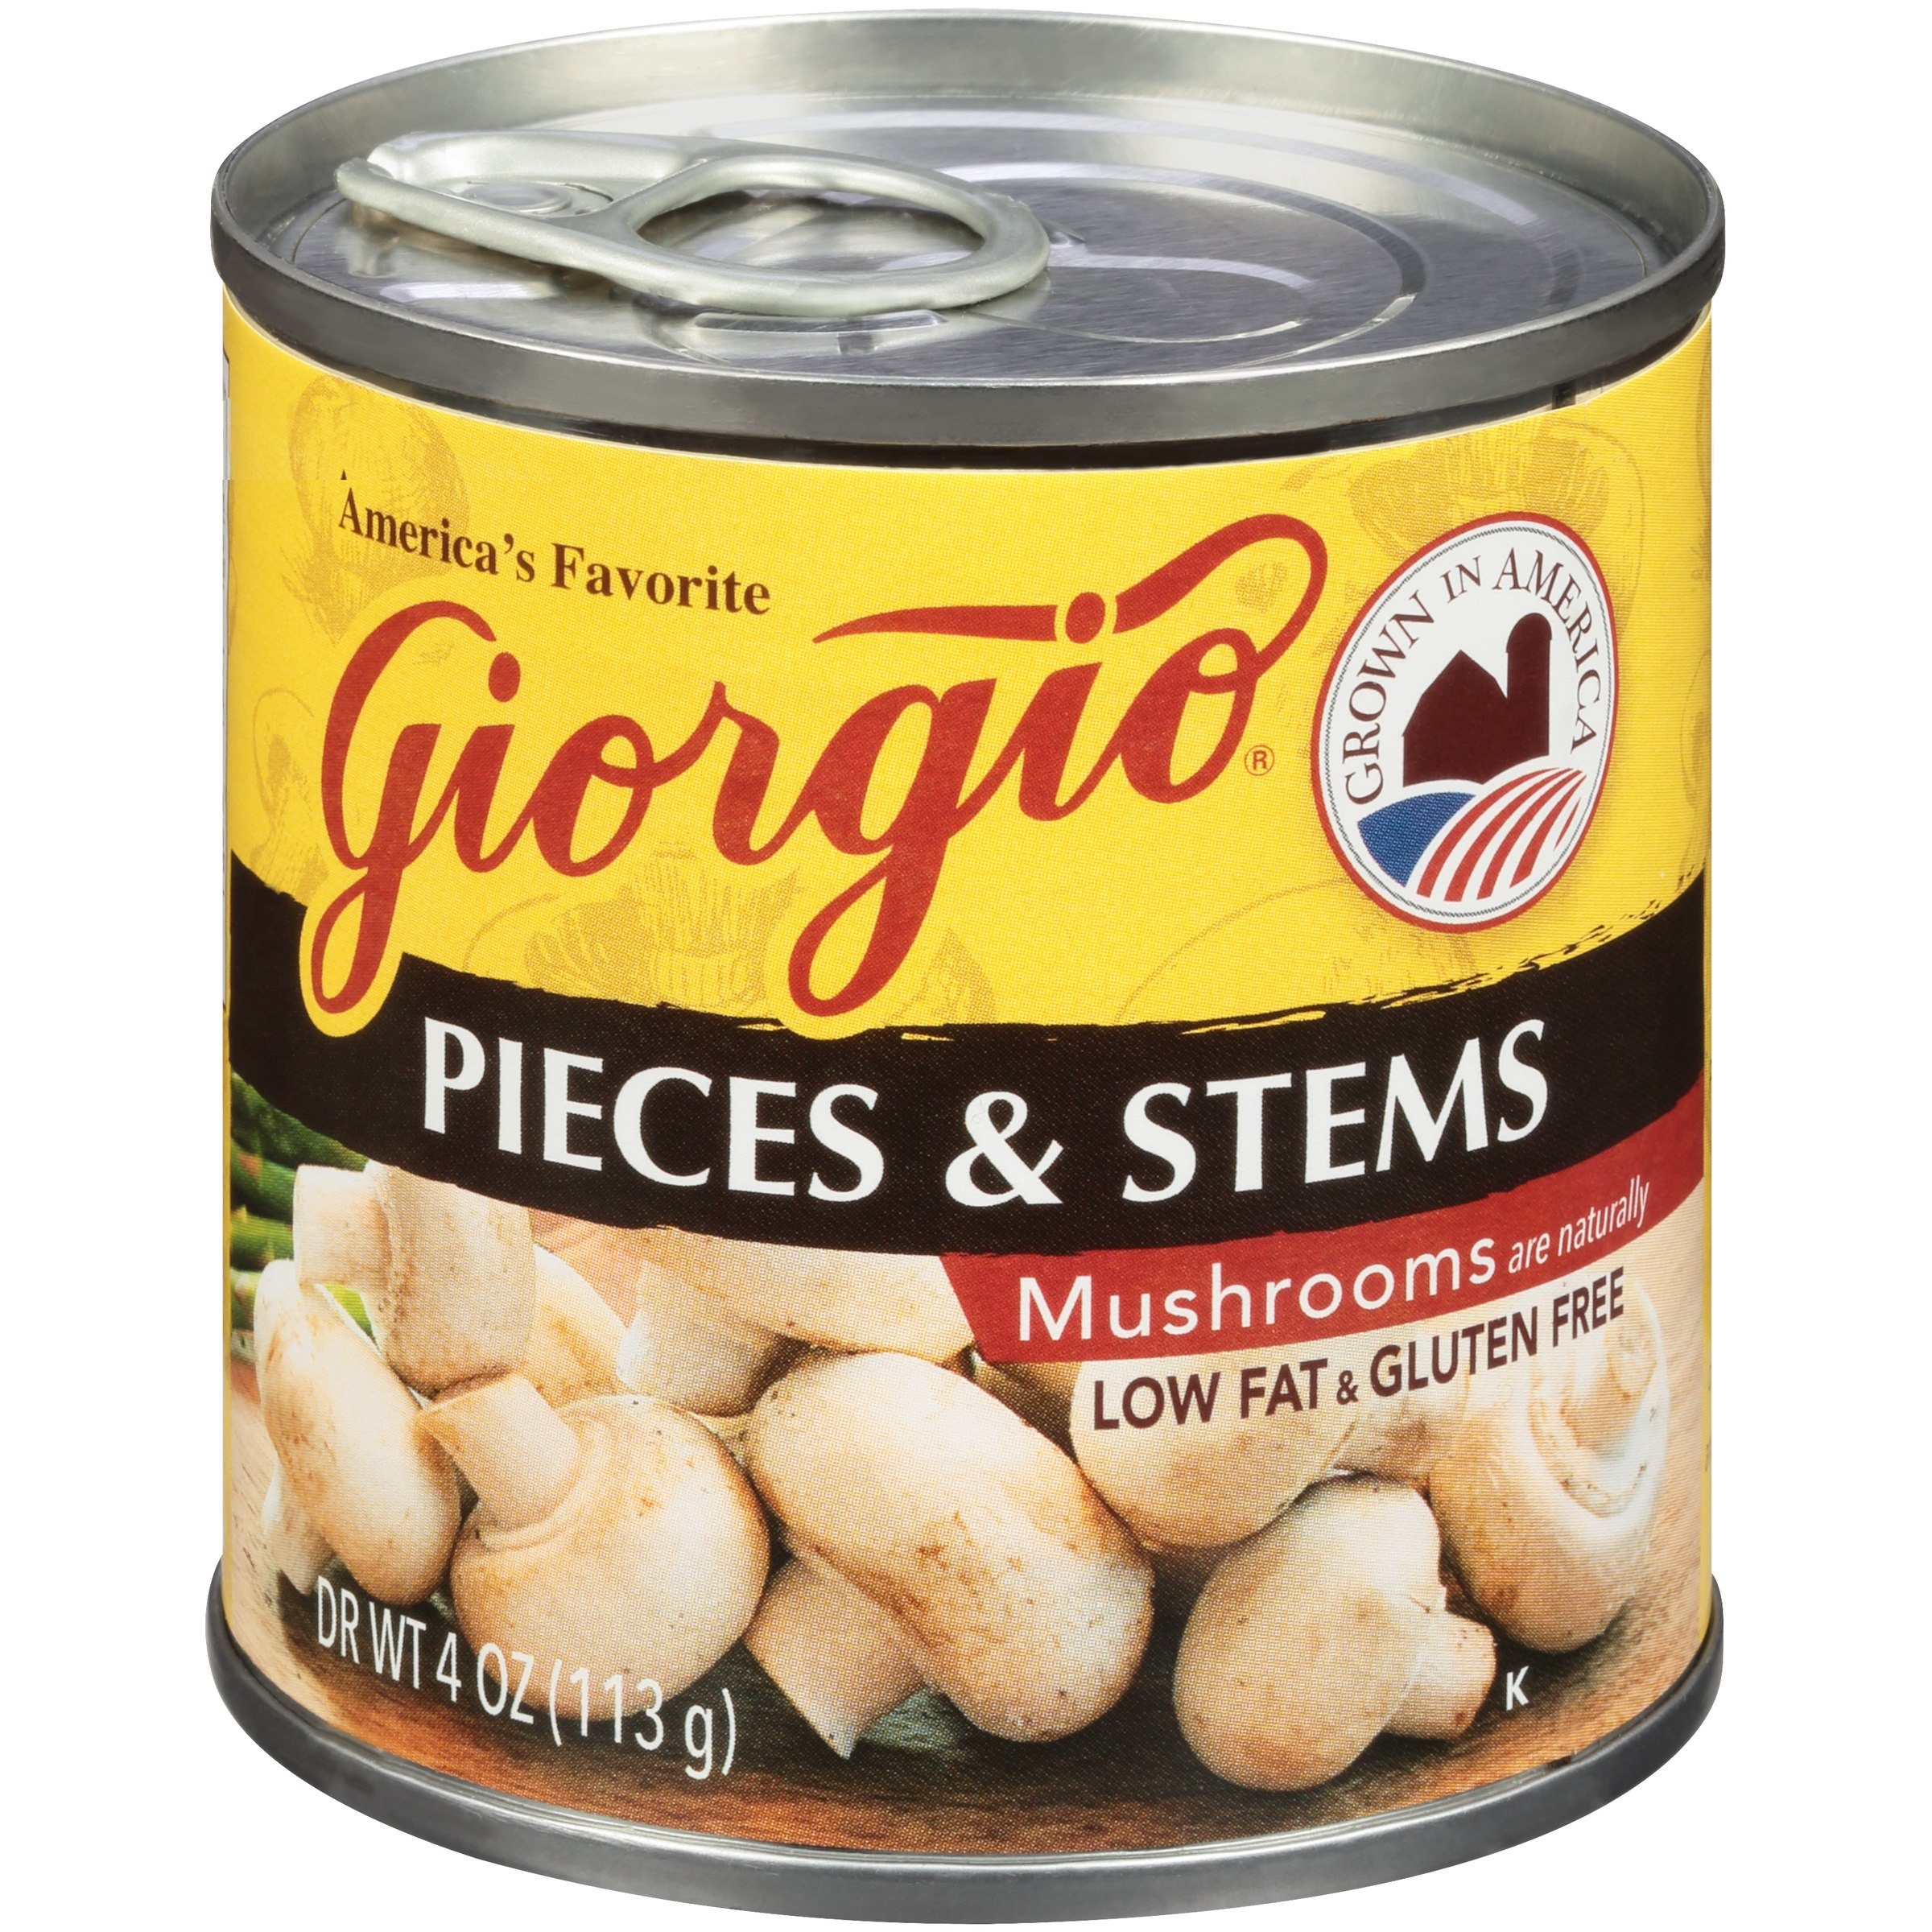 Giorgio Pieces & Stems Mushrooms 4 Oz Can